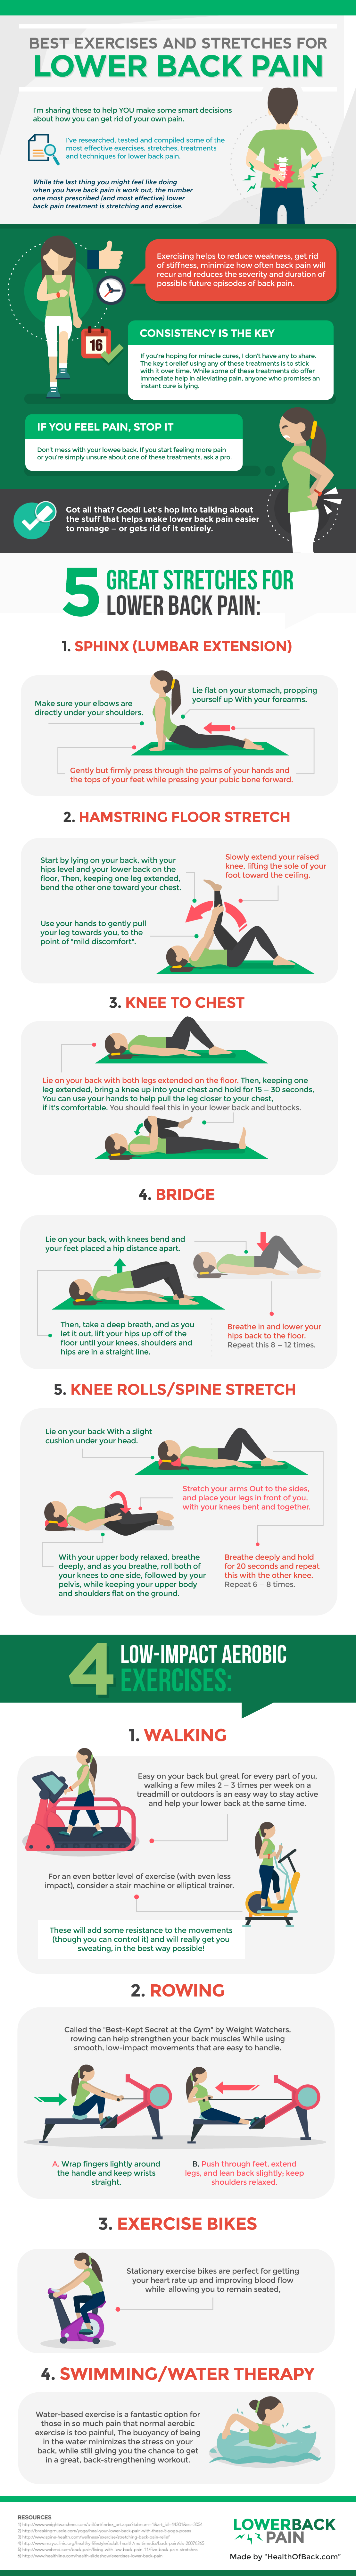 Best Stretches and Exercises for Lower Back Pain